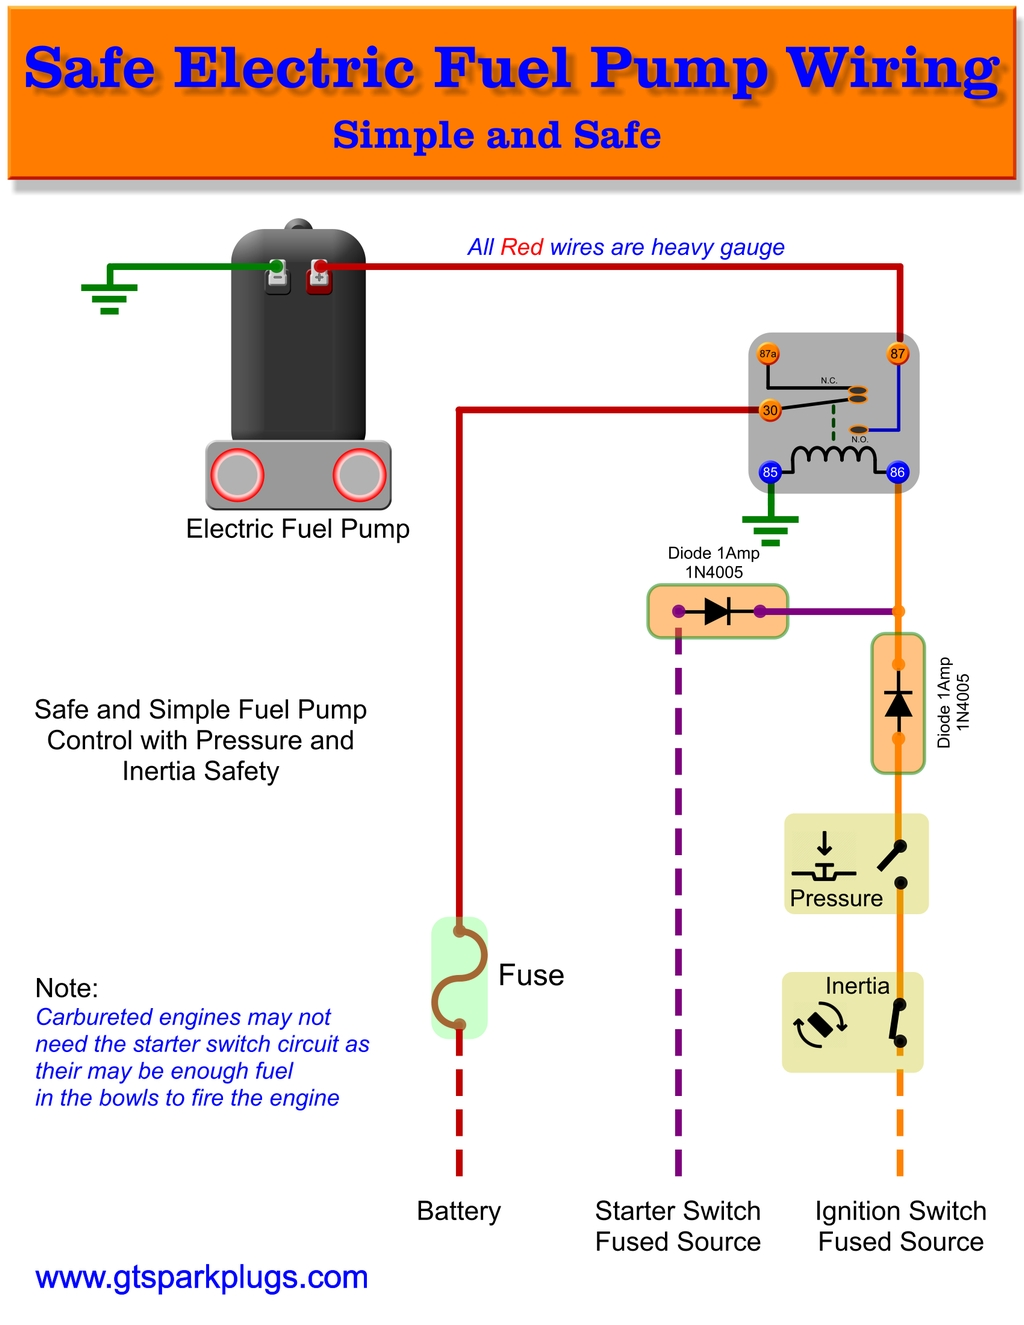 Electric fuel pump wiring diagram gtsparkplugs